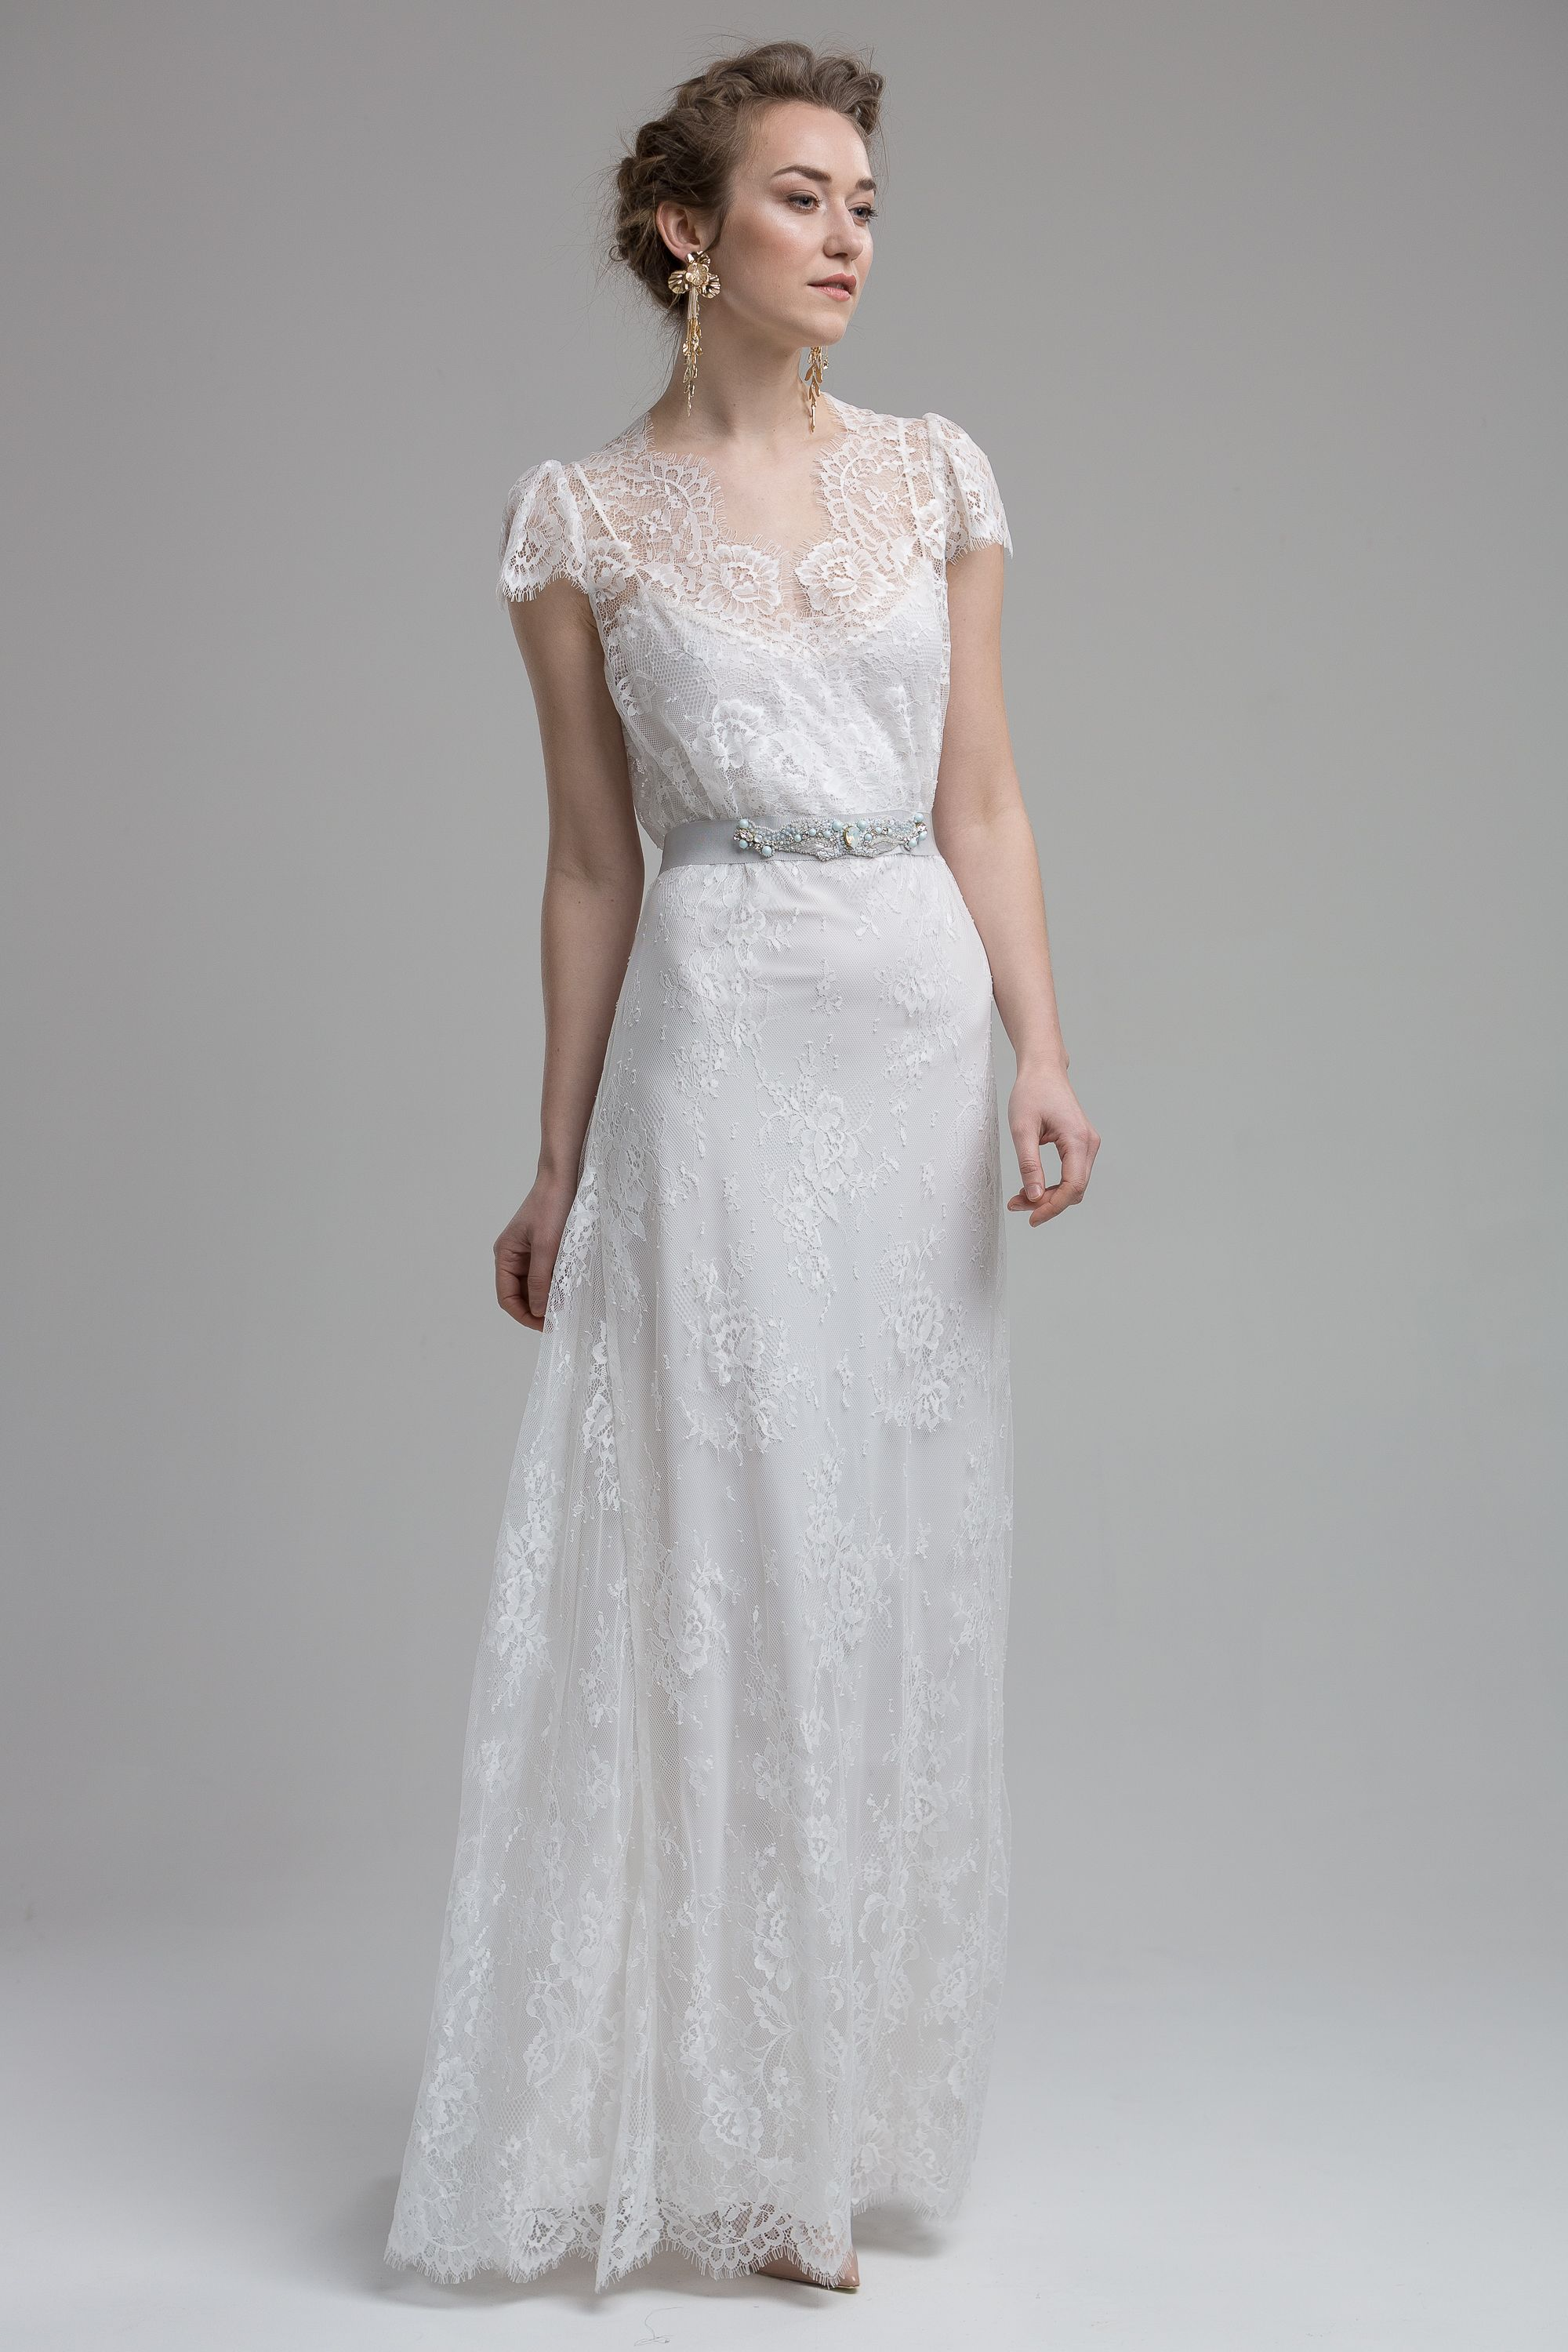 9573d974d8 London based designer label that offers a unique selection of feminine  bridal and womenswear pieces from